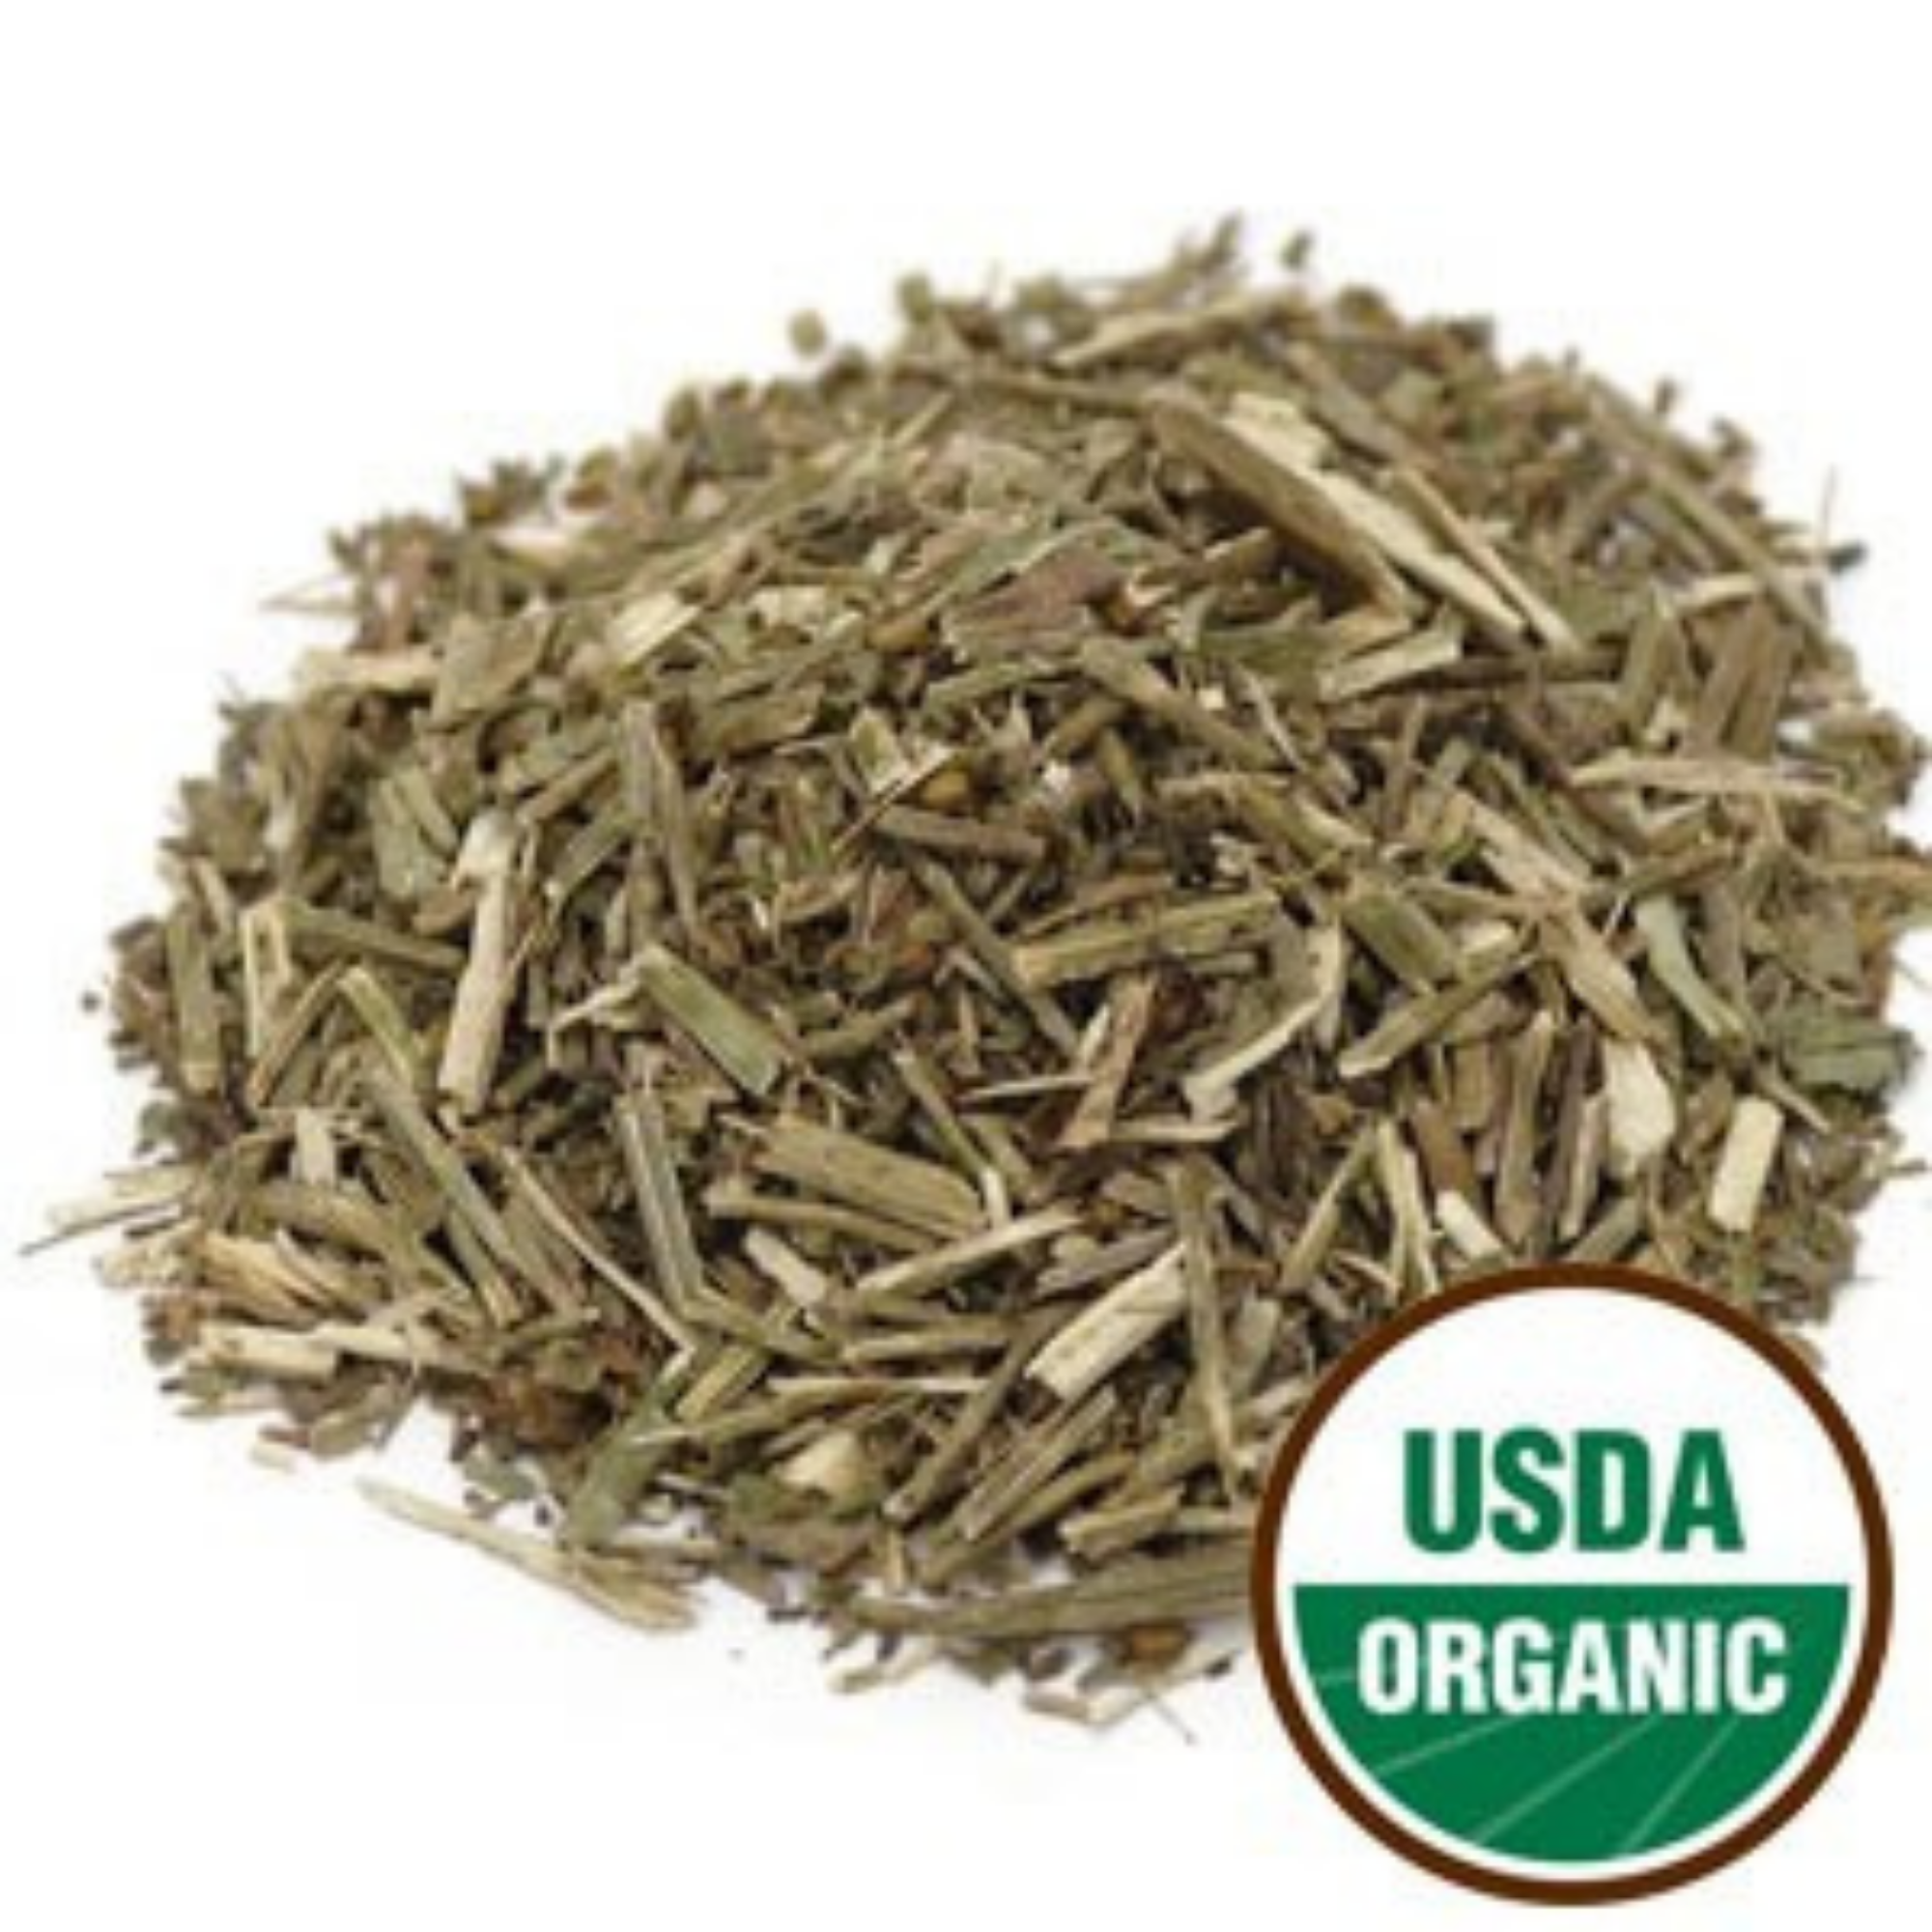 Blue vervain USDA Organic by Millwood Naturals